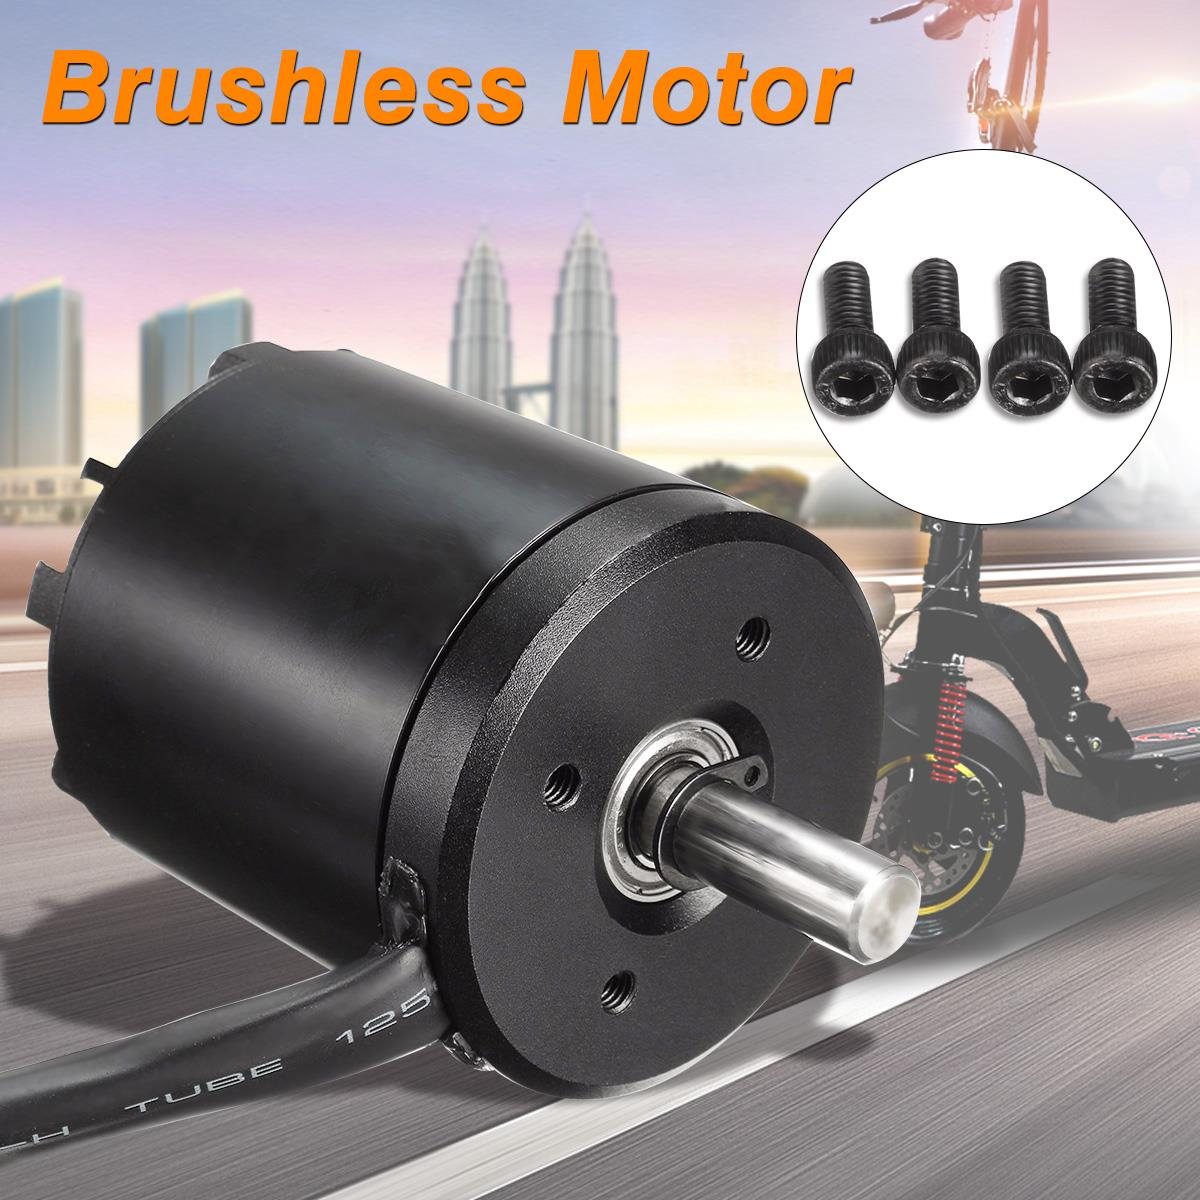 2.6KG 3-8S N5065 5065 270KV Brushless Sensored Motor For Electric Skate Scooter Motor Accessories цена